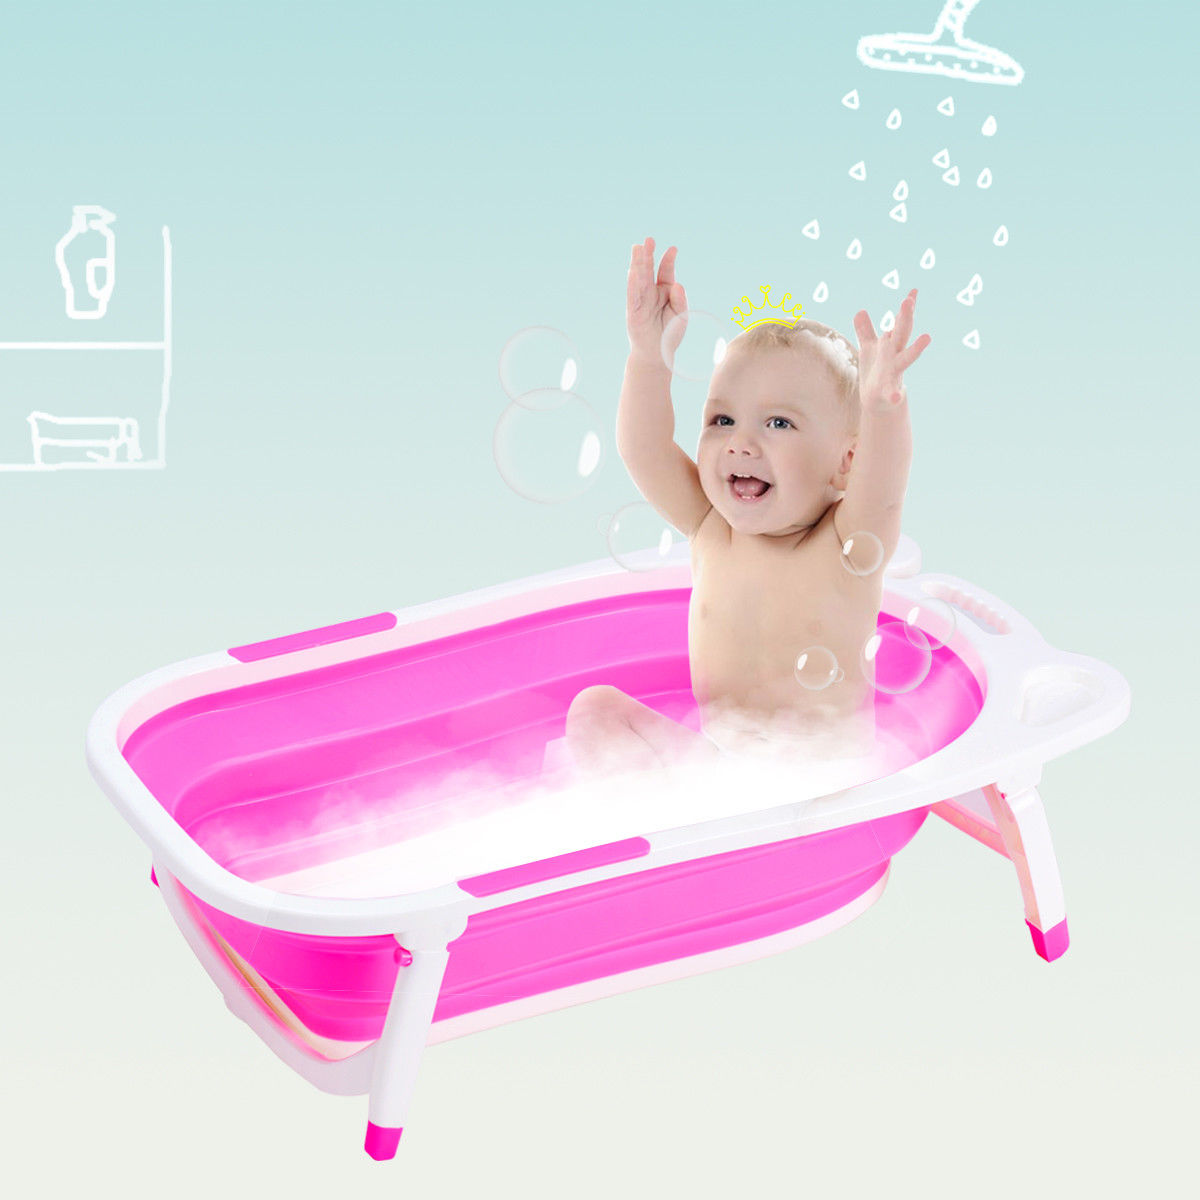 Gymax Pink Baby Folding Bathtub Infant Collapsible Portable Shower Basin w  Block by Gymax